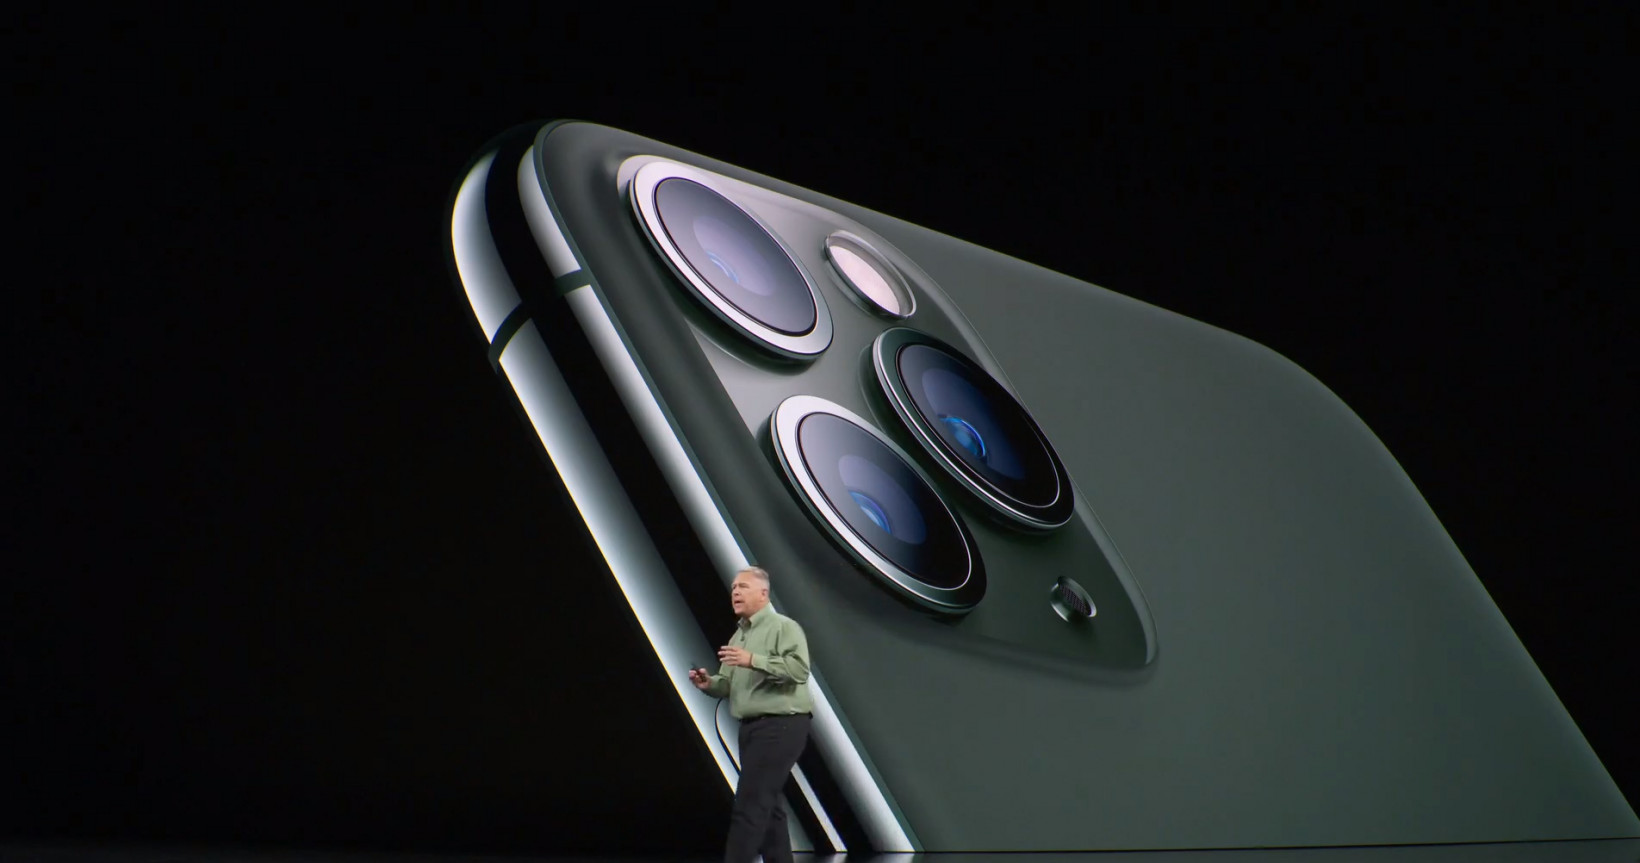 Apple launches the iPhone 11 Pro with triple cameras and hours more battery